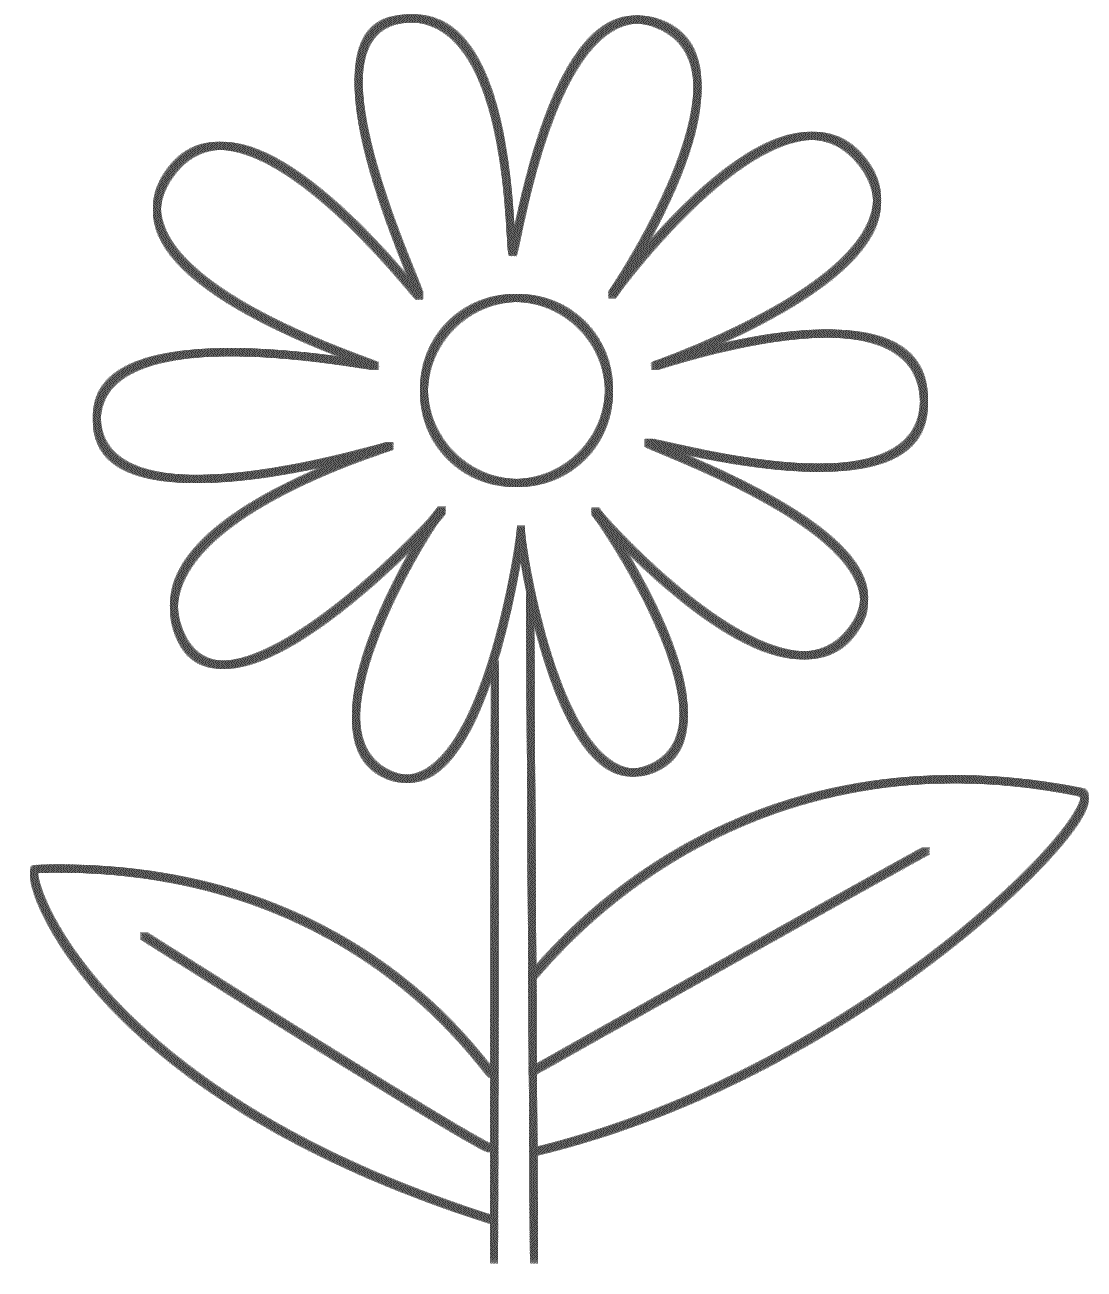 Download And Print Easy Printable Flower Coloring Pages Flower